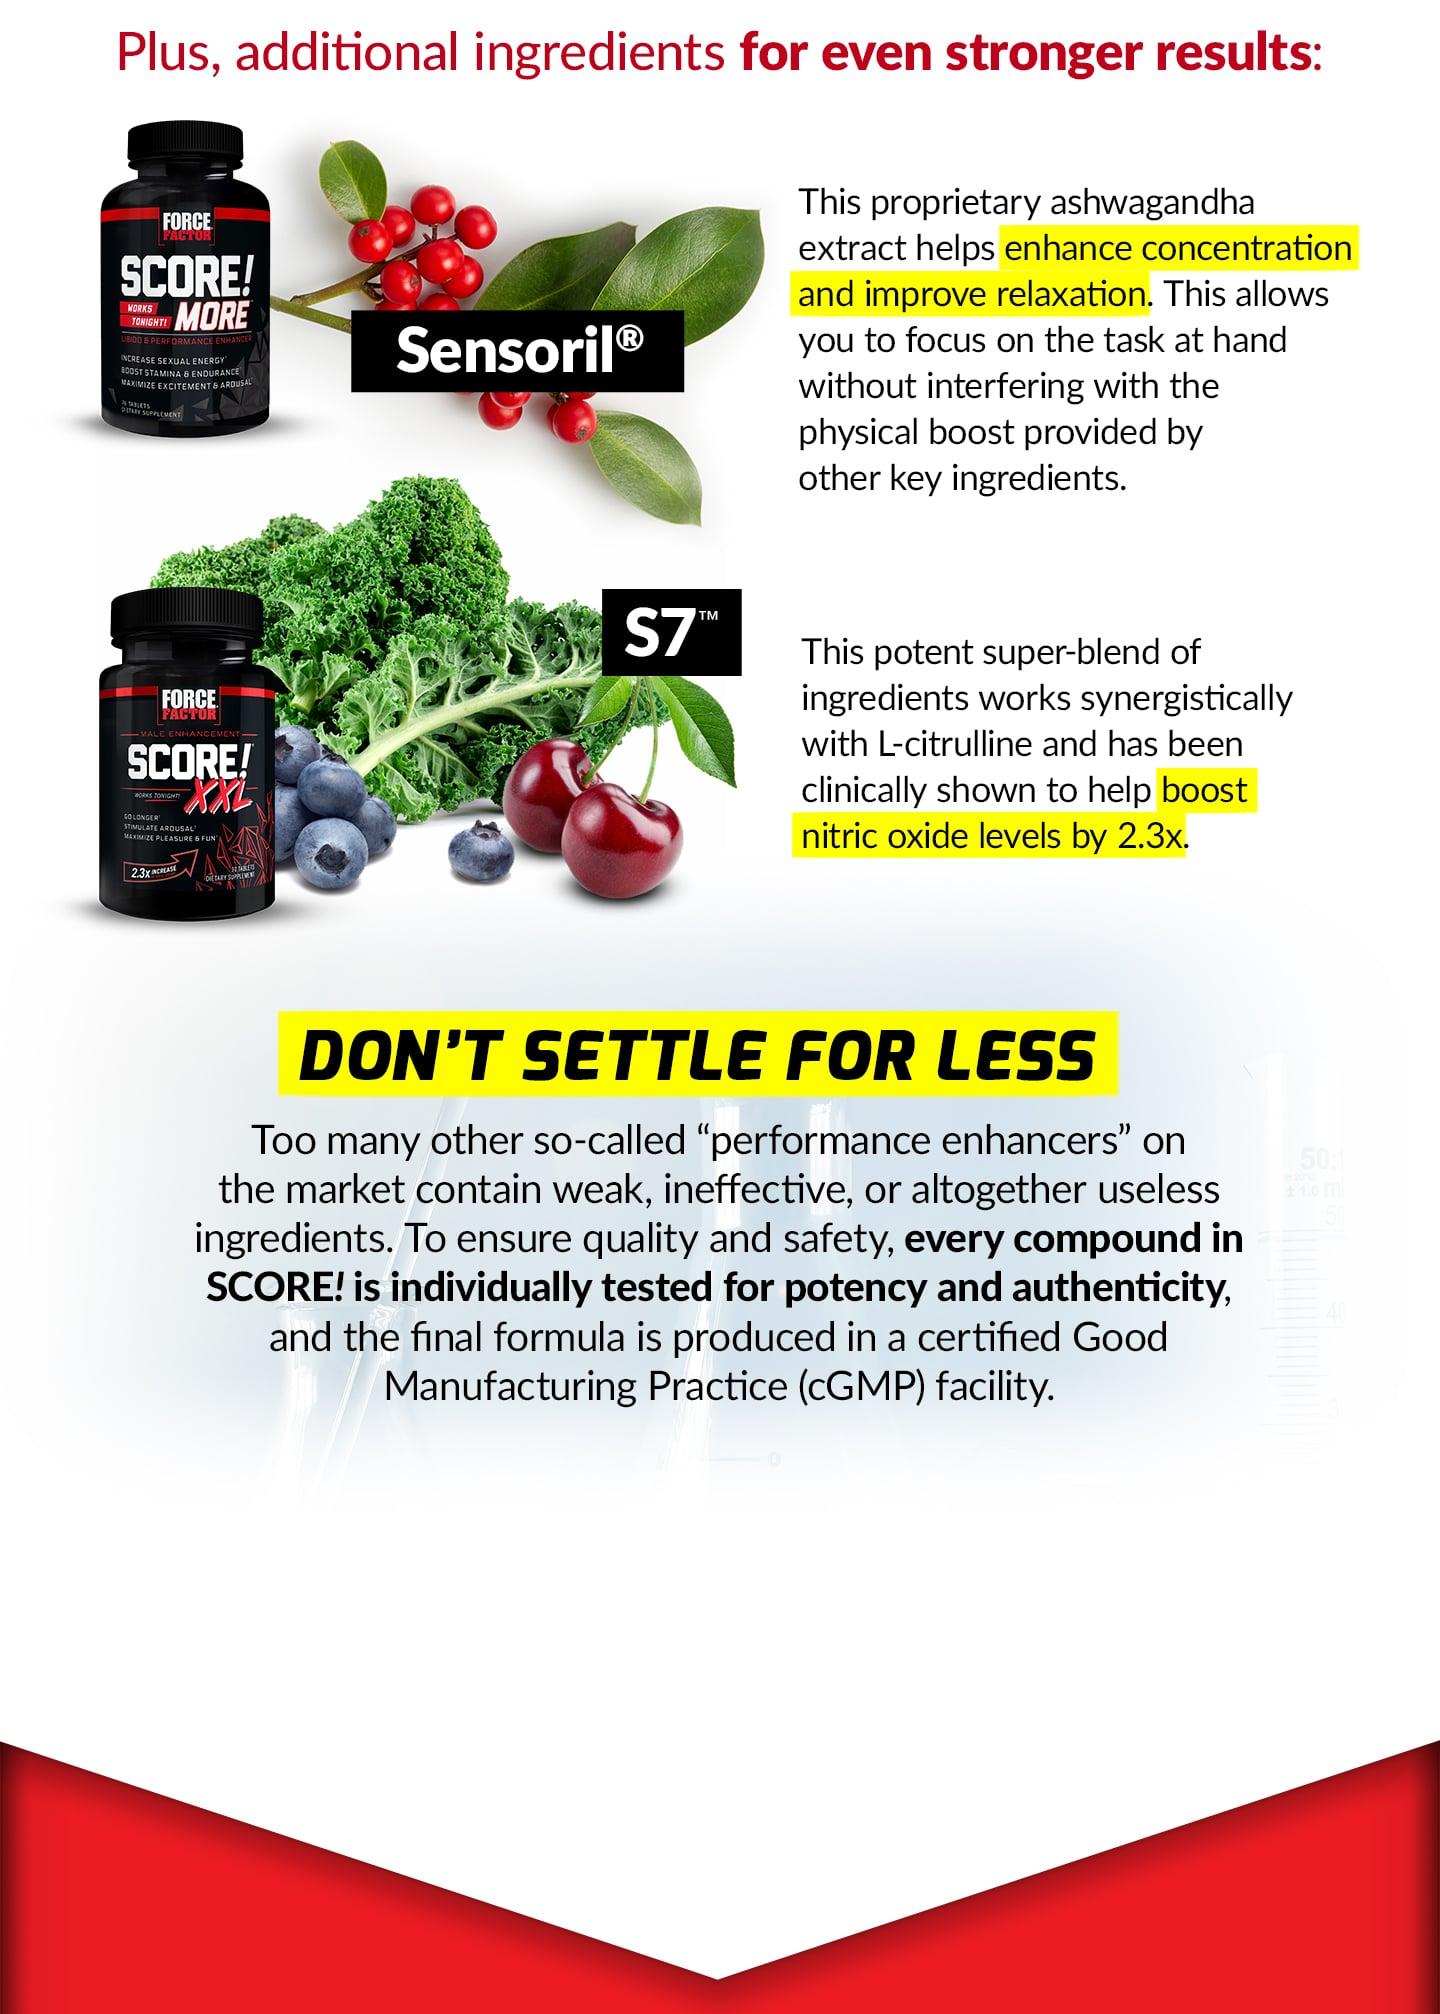 "Plus, additional ingredients for even stronger results: Sensoril® - This proprietary ashwagandha extract helps enhance concentration and improve relaxation. This allows you to focus on the task at hand without interfering with the physical boost provided by other key ingredients. S7™ - This potent super-blend of ingredients works synergistically with L-citrulline and has been clinically shown to help boost nitric oxide levels by 2.3x. DON'T SETTLE FOR LESS. Too many other so-called ""performance enhancers"" on the market contain weak, ineffective, or altogether useless ingredients. To ensure quality and safety, every compound in SCORE! is individually tested for potency and authenticity, and the final formula is produced in a certified Good Manufacturing Practice (cGMP) facility."